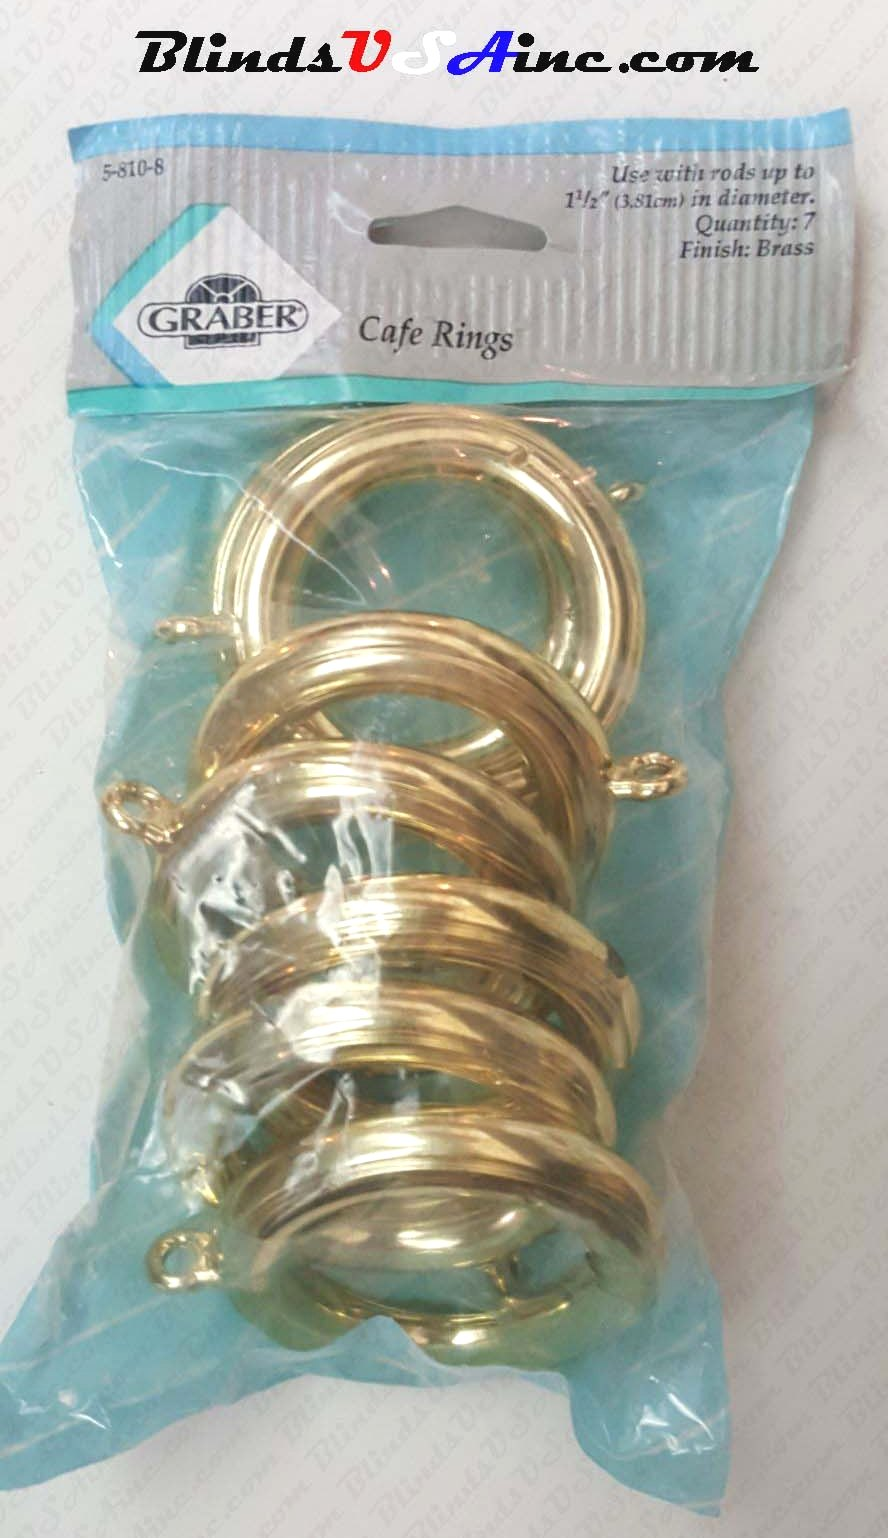 Graber Cafe Rings with Eyelet, pack of 7, finish brass, 1-3/4 inch inner diameter, Item # DCRng-810-8, Part # 5-810-8